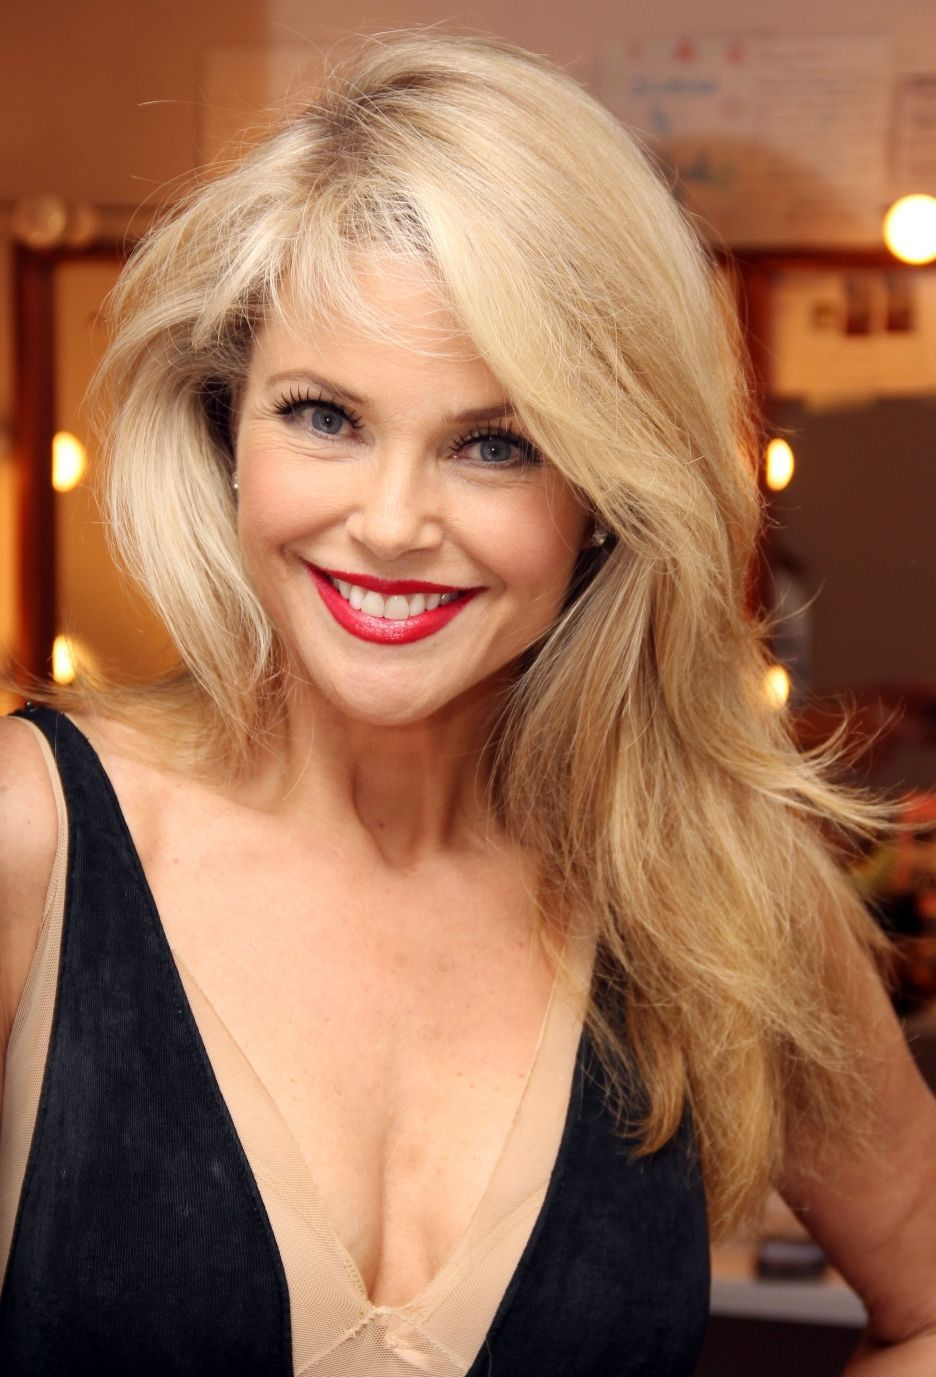 Christie Brinkley 60 years old people! Looks young and